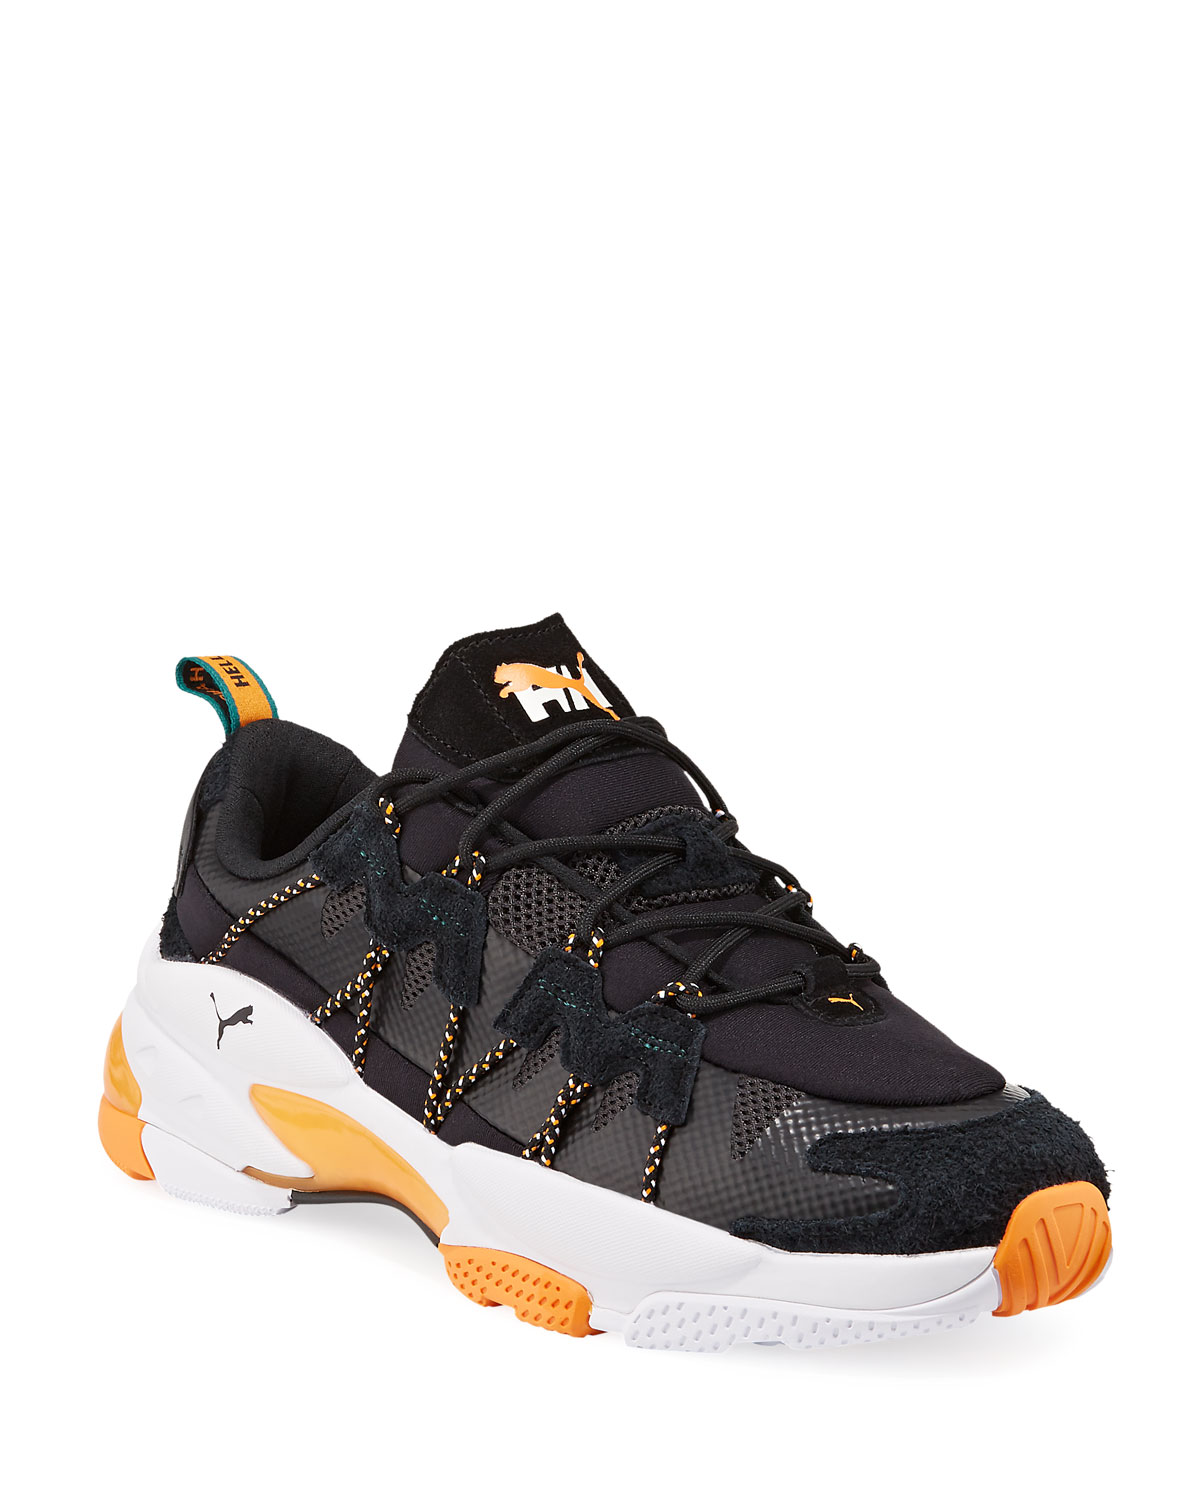 Puma Men's x Helly Hansen LQD Cell Omega Trainer Sneakers